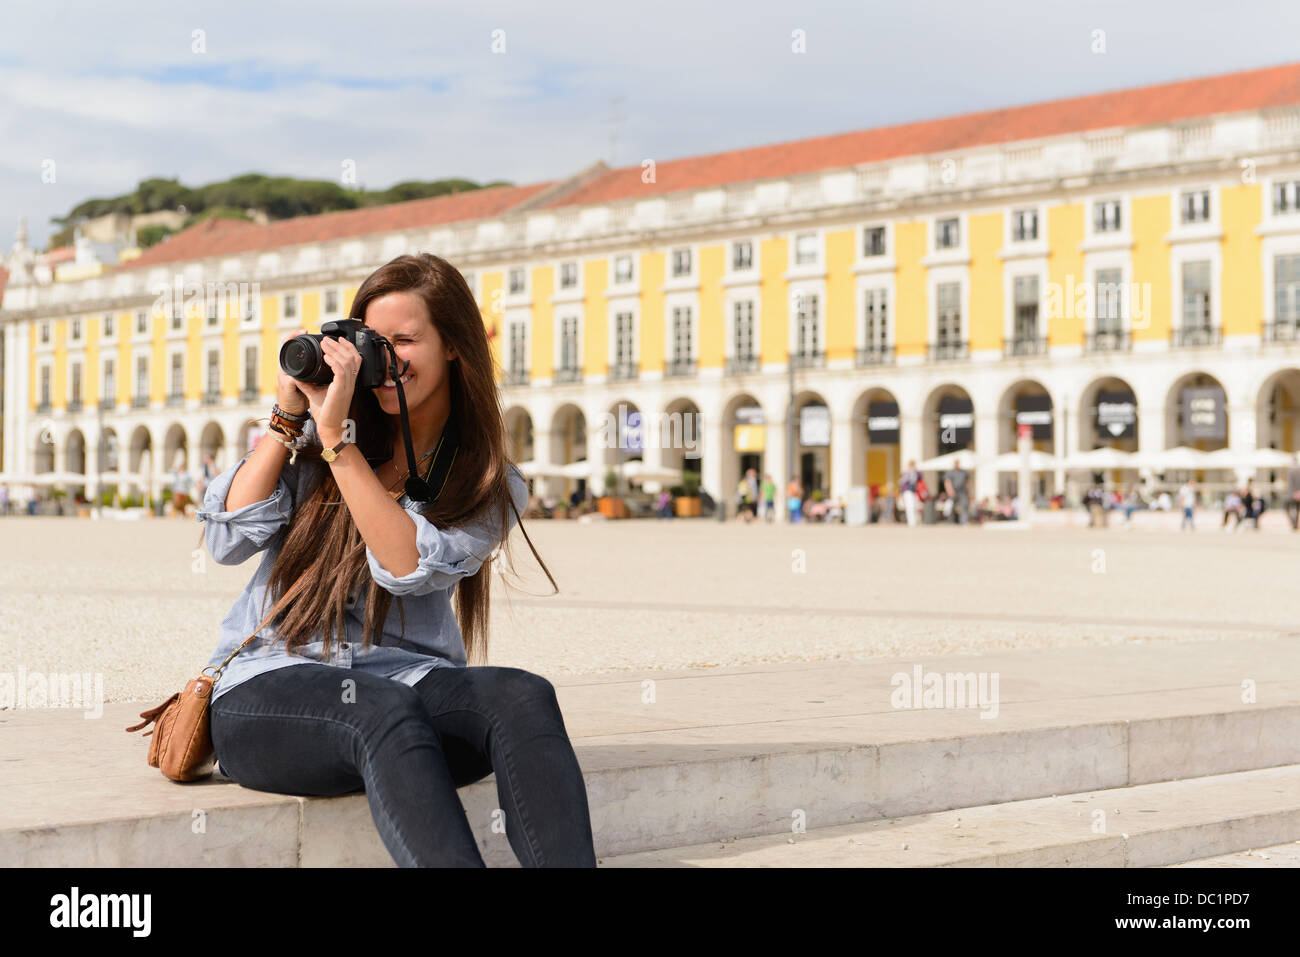 Young female tourist photographing in Rossio Square, Lisbon, Portugal - Stock Image